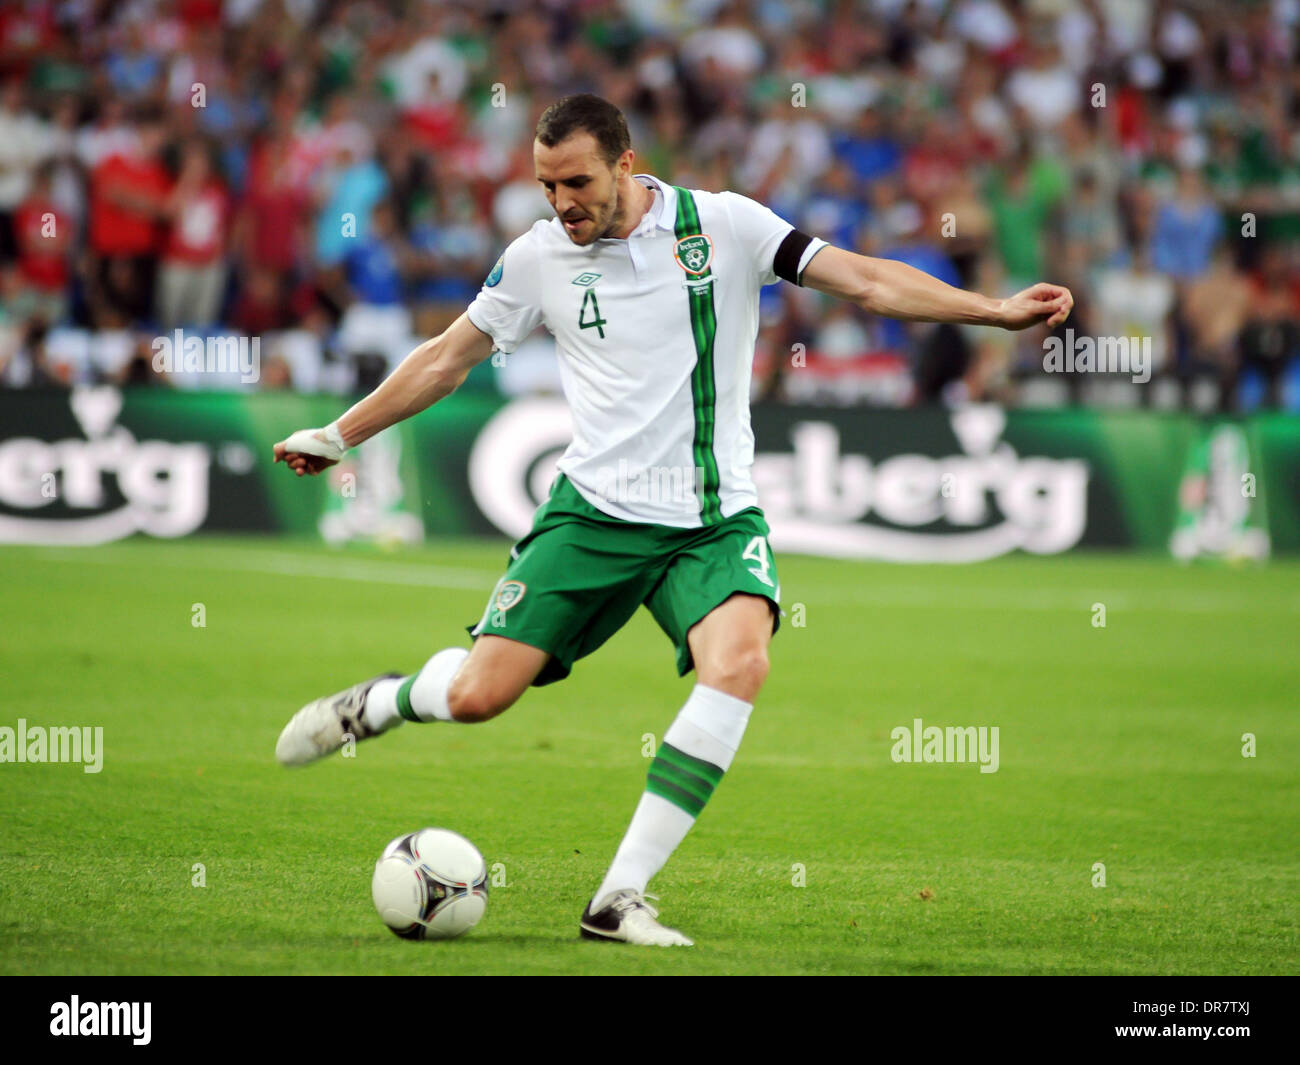 John O'Shea (Sunderland AFC) in action for Rep of Ireland during the European Championship Group C game between Italy and Ireland at the Municipal Stadium. In Poznan, Poland on June 18, 2012. Italy won the match 2-0 Poznan, Poland - 18.06.12 - Stock Image